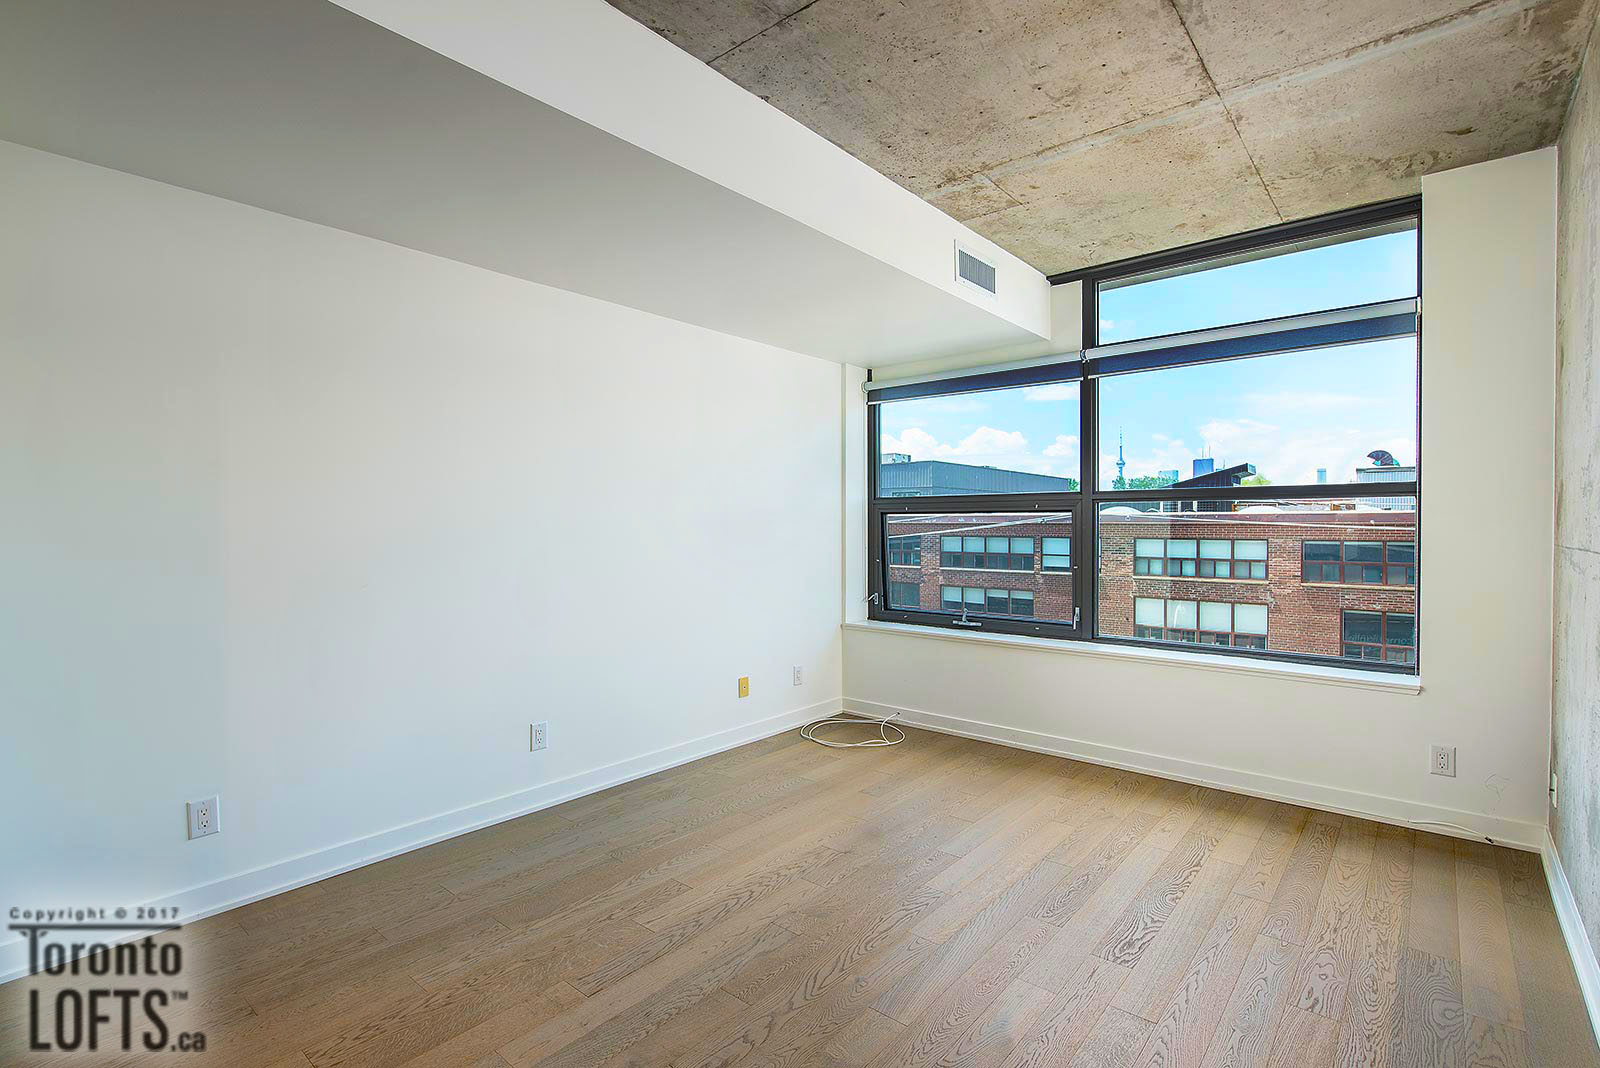 Work Lofts - #407 | Toronto LOFTS